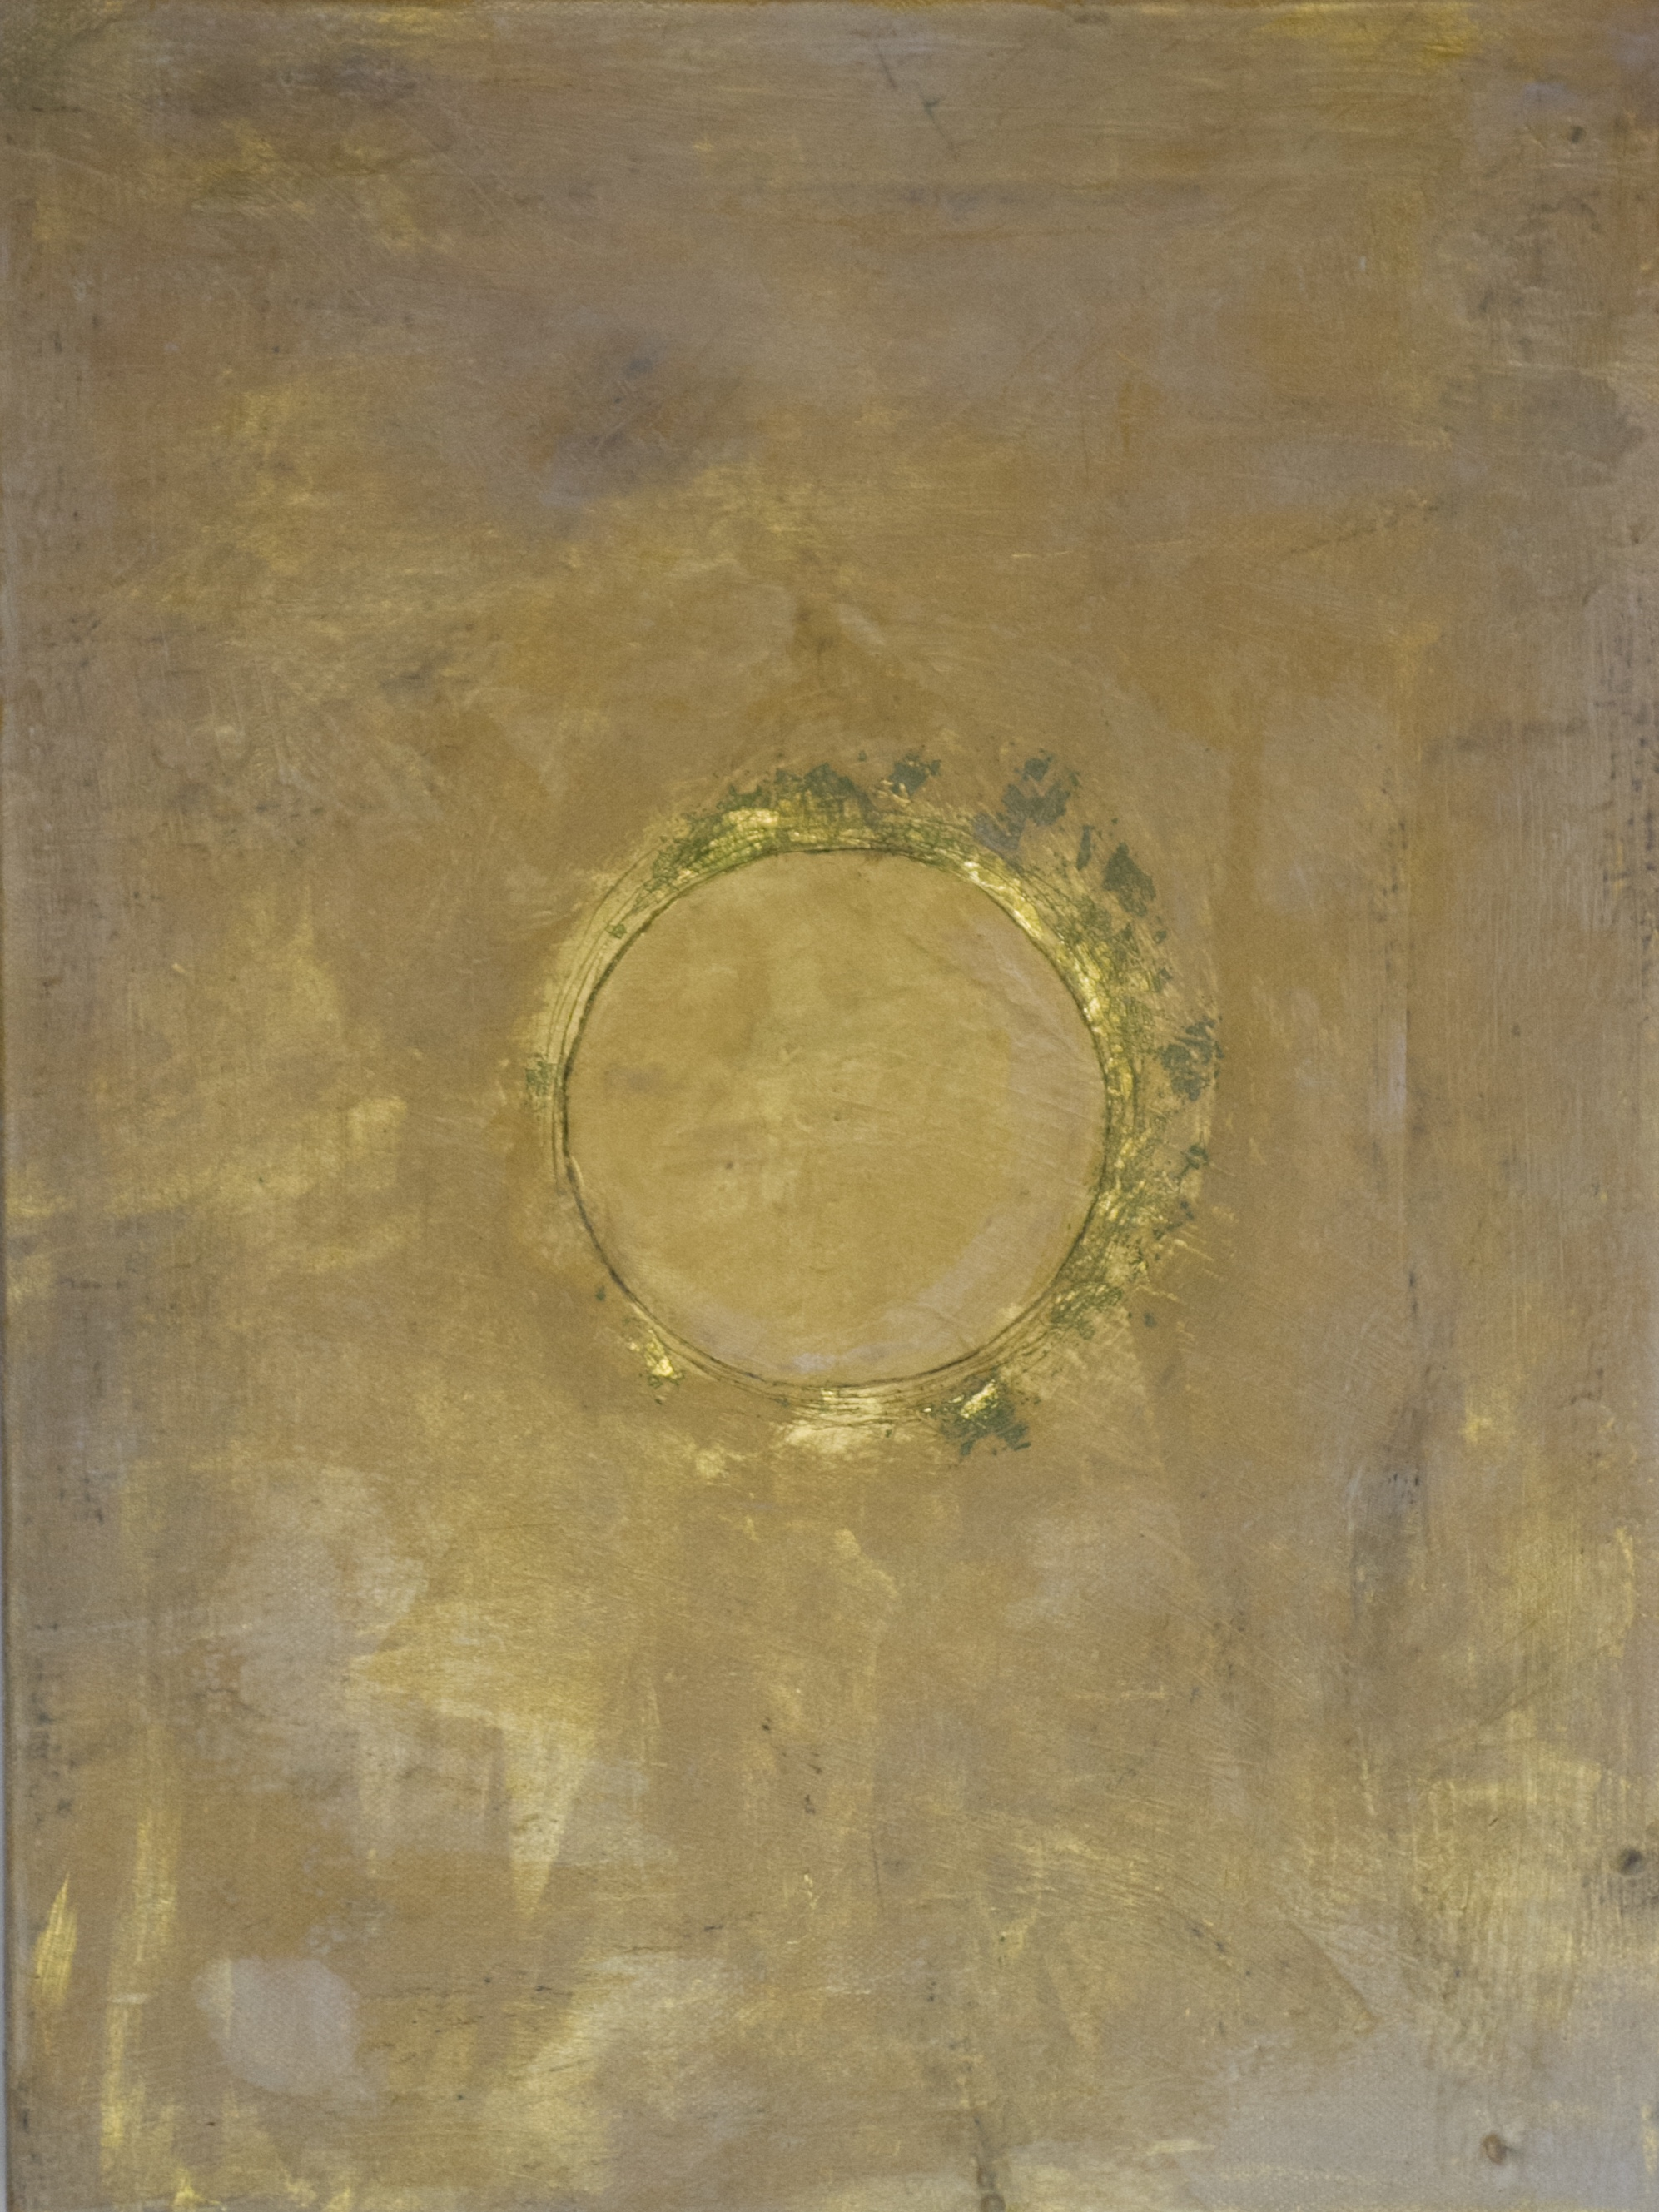 Eclips. By Joanna Ahlman. Oil, Acrylic and gold leaf on canvas. 12x16in. $80.00